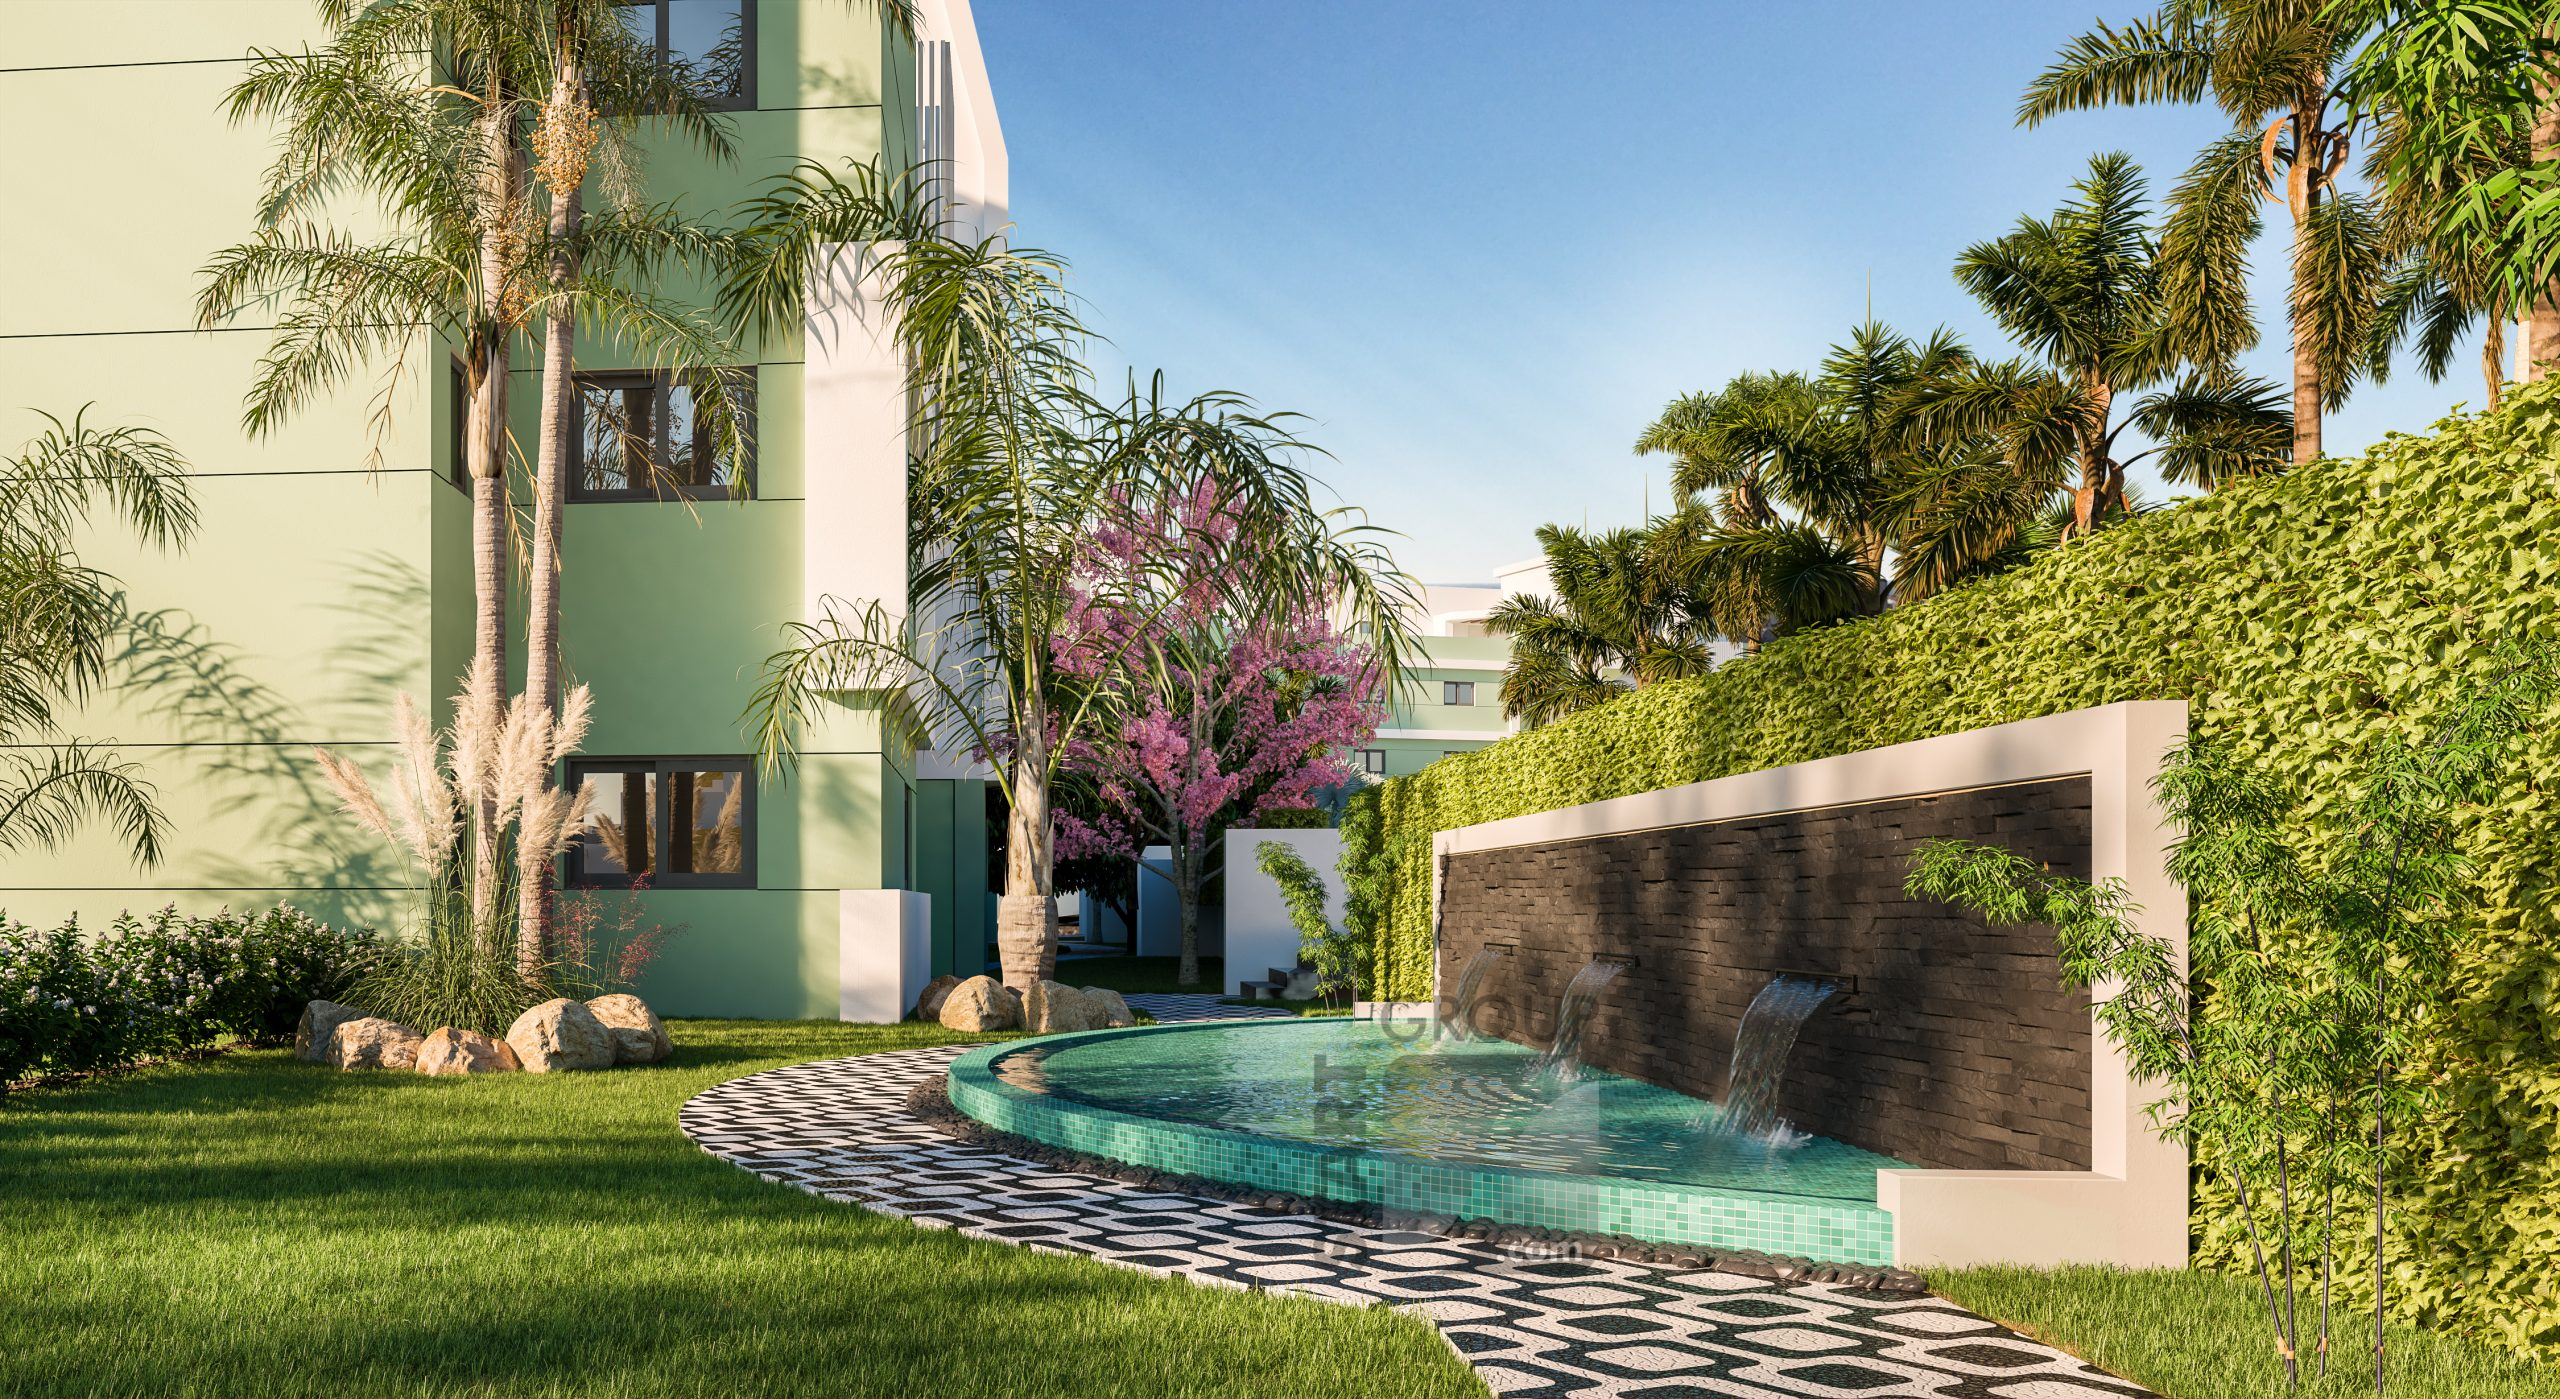 the gardens in this new golf development are inspiered by ipanema